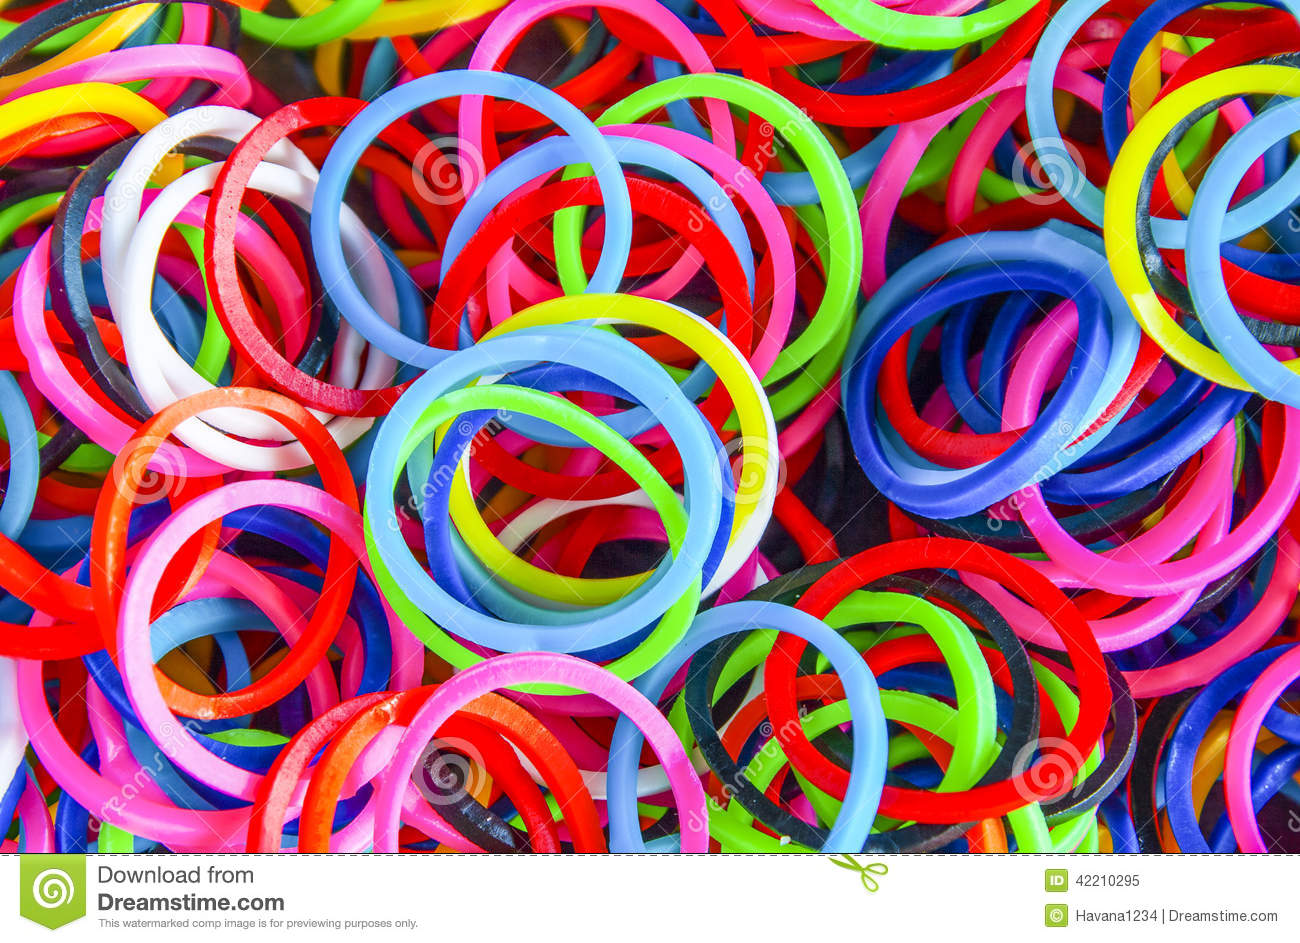 A Colorful Background Rainbow Loom Rubber Bands Fashion